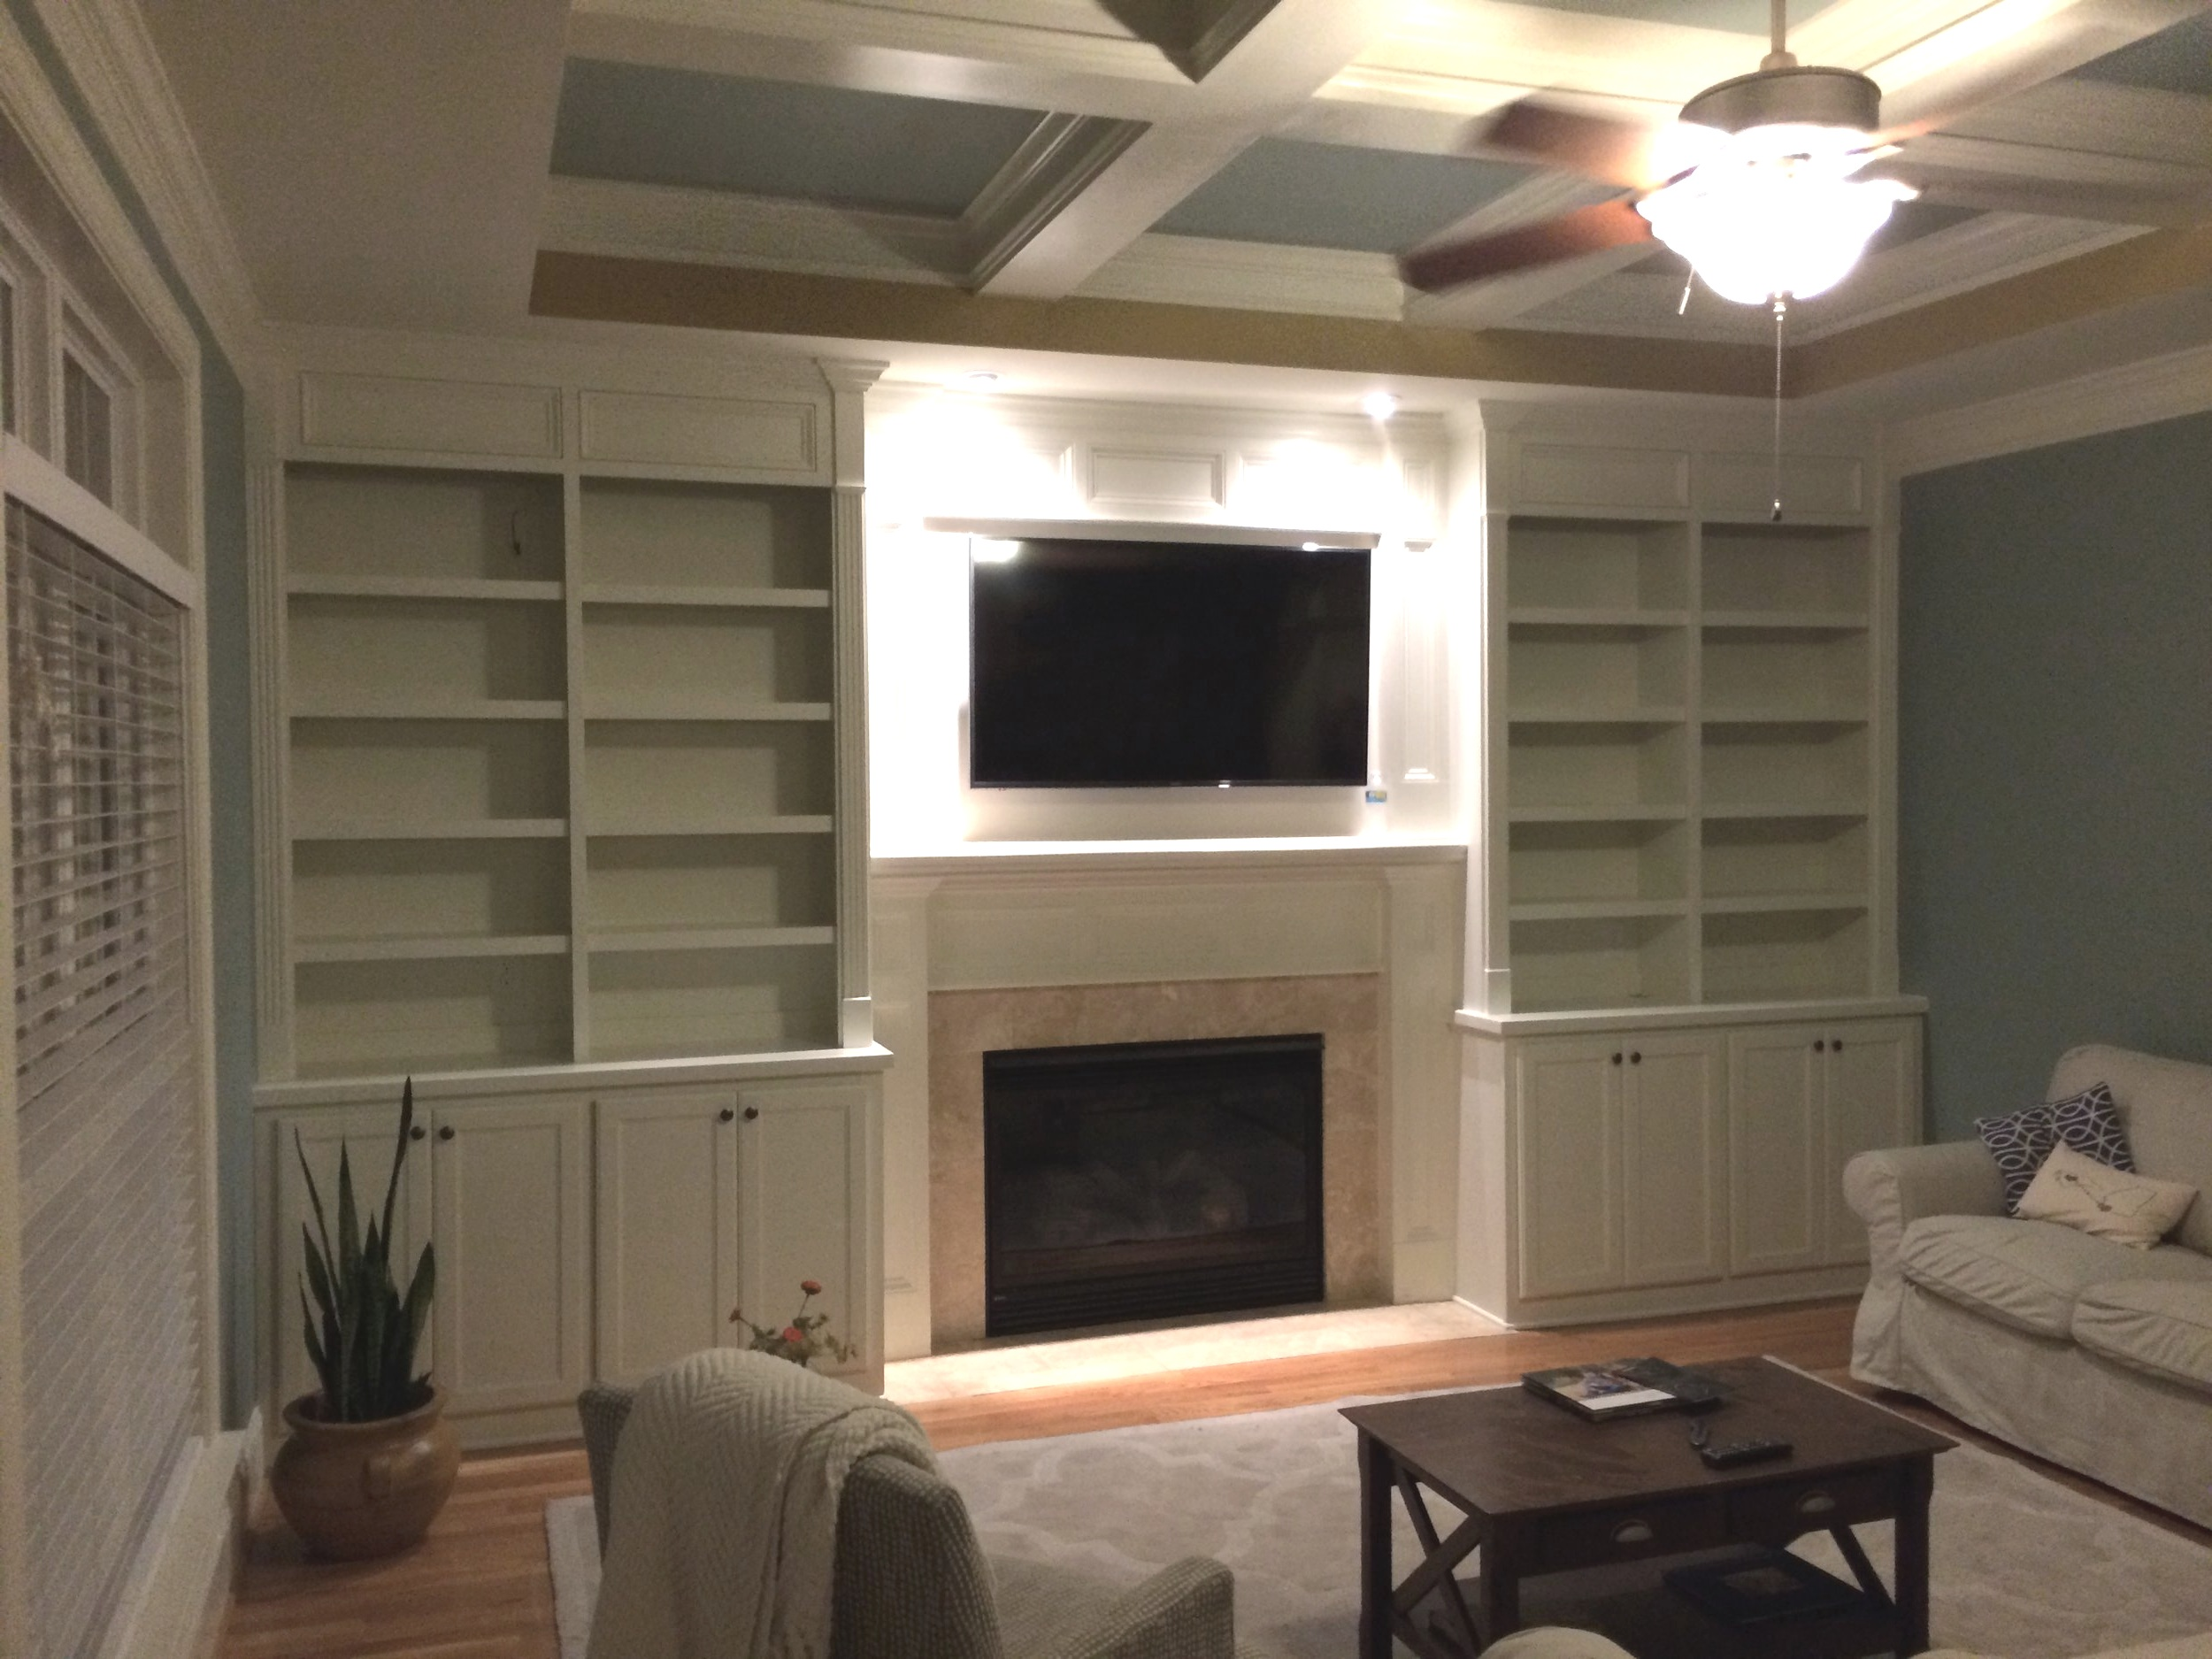 Fireplace Built-Ins with Adjustable Shelves, Shaker Doors, Applied Panel Header Detail, and Crown